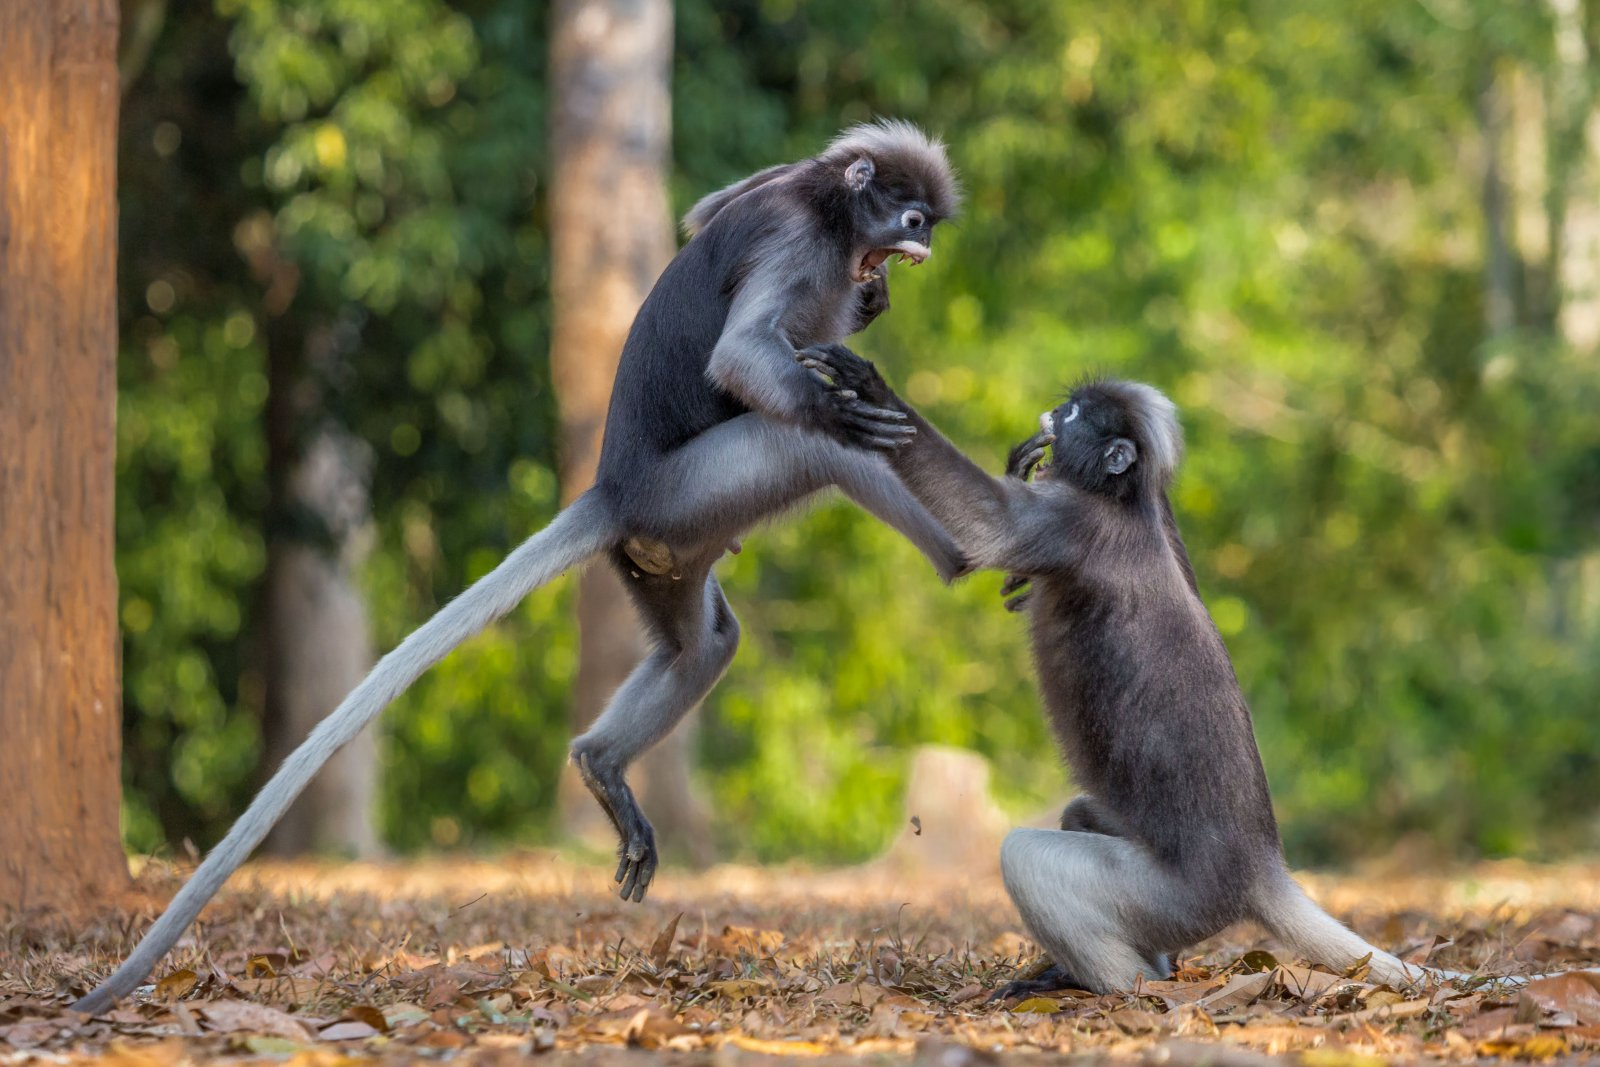 This Is Sparta, © Sergey Savvi, Highly Commended, Comedy Wildlife Photography Awards